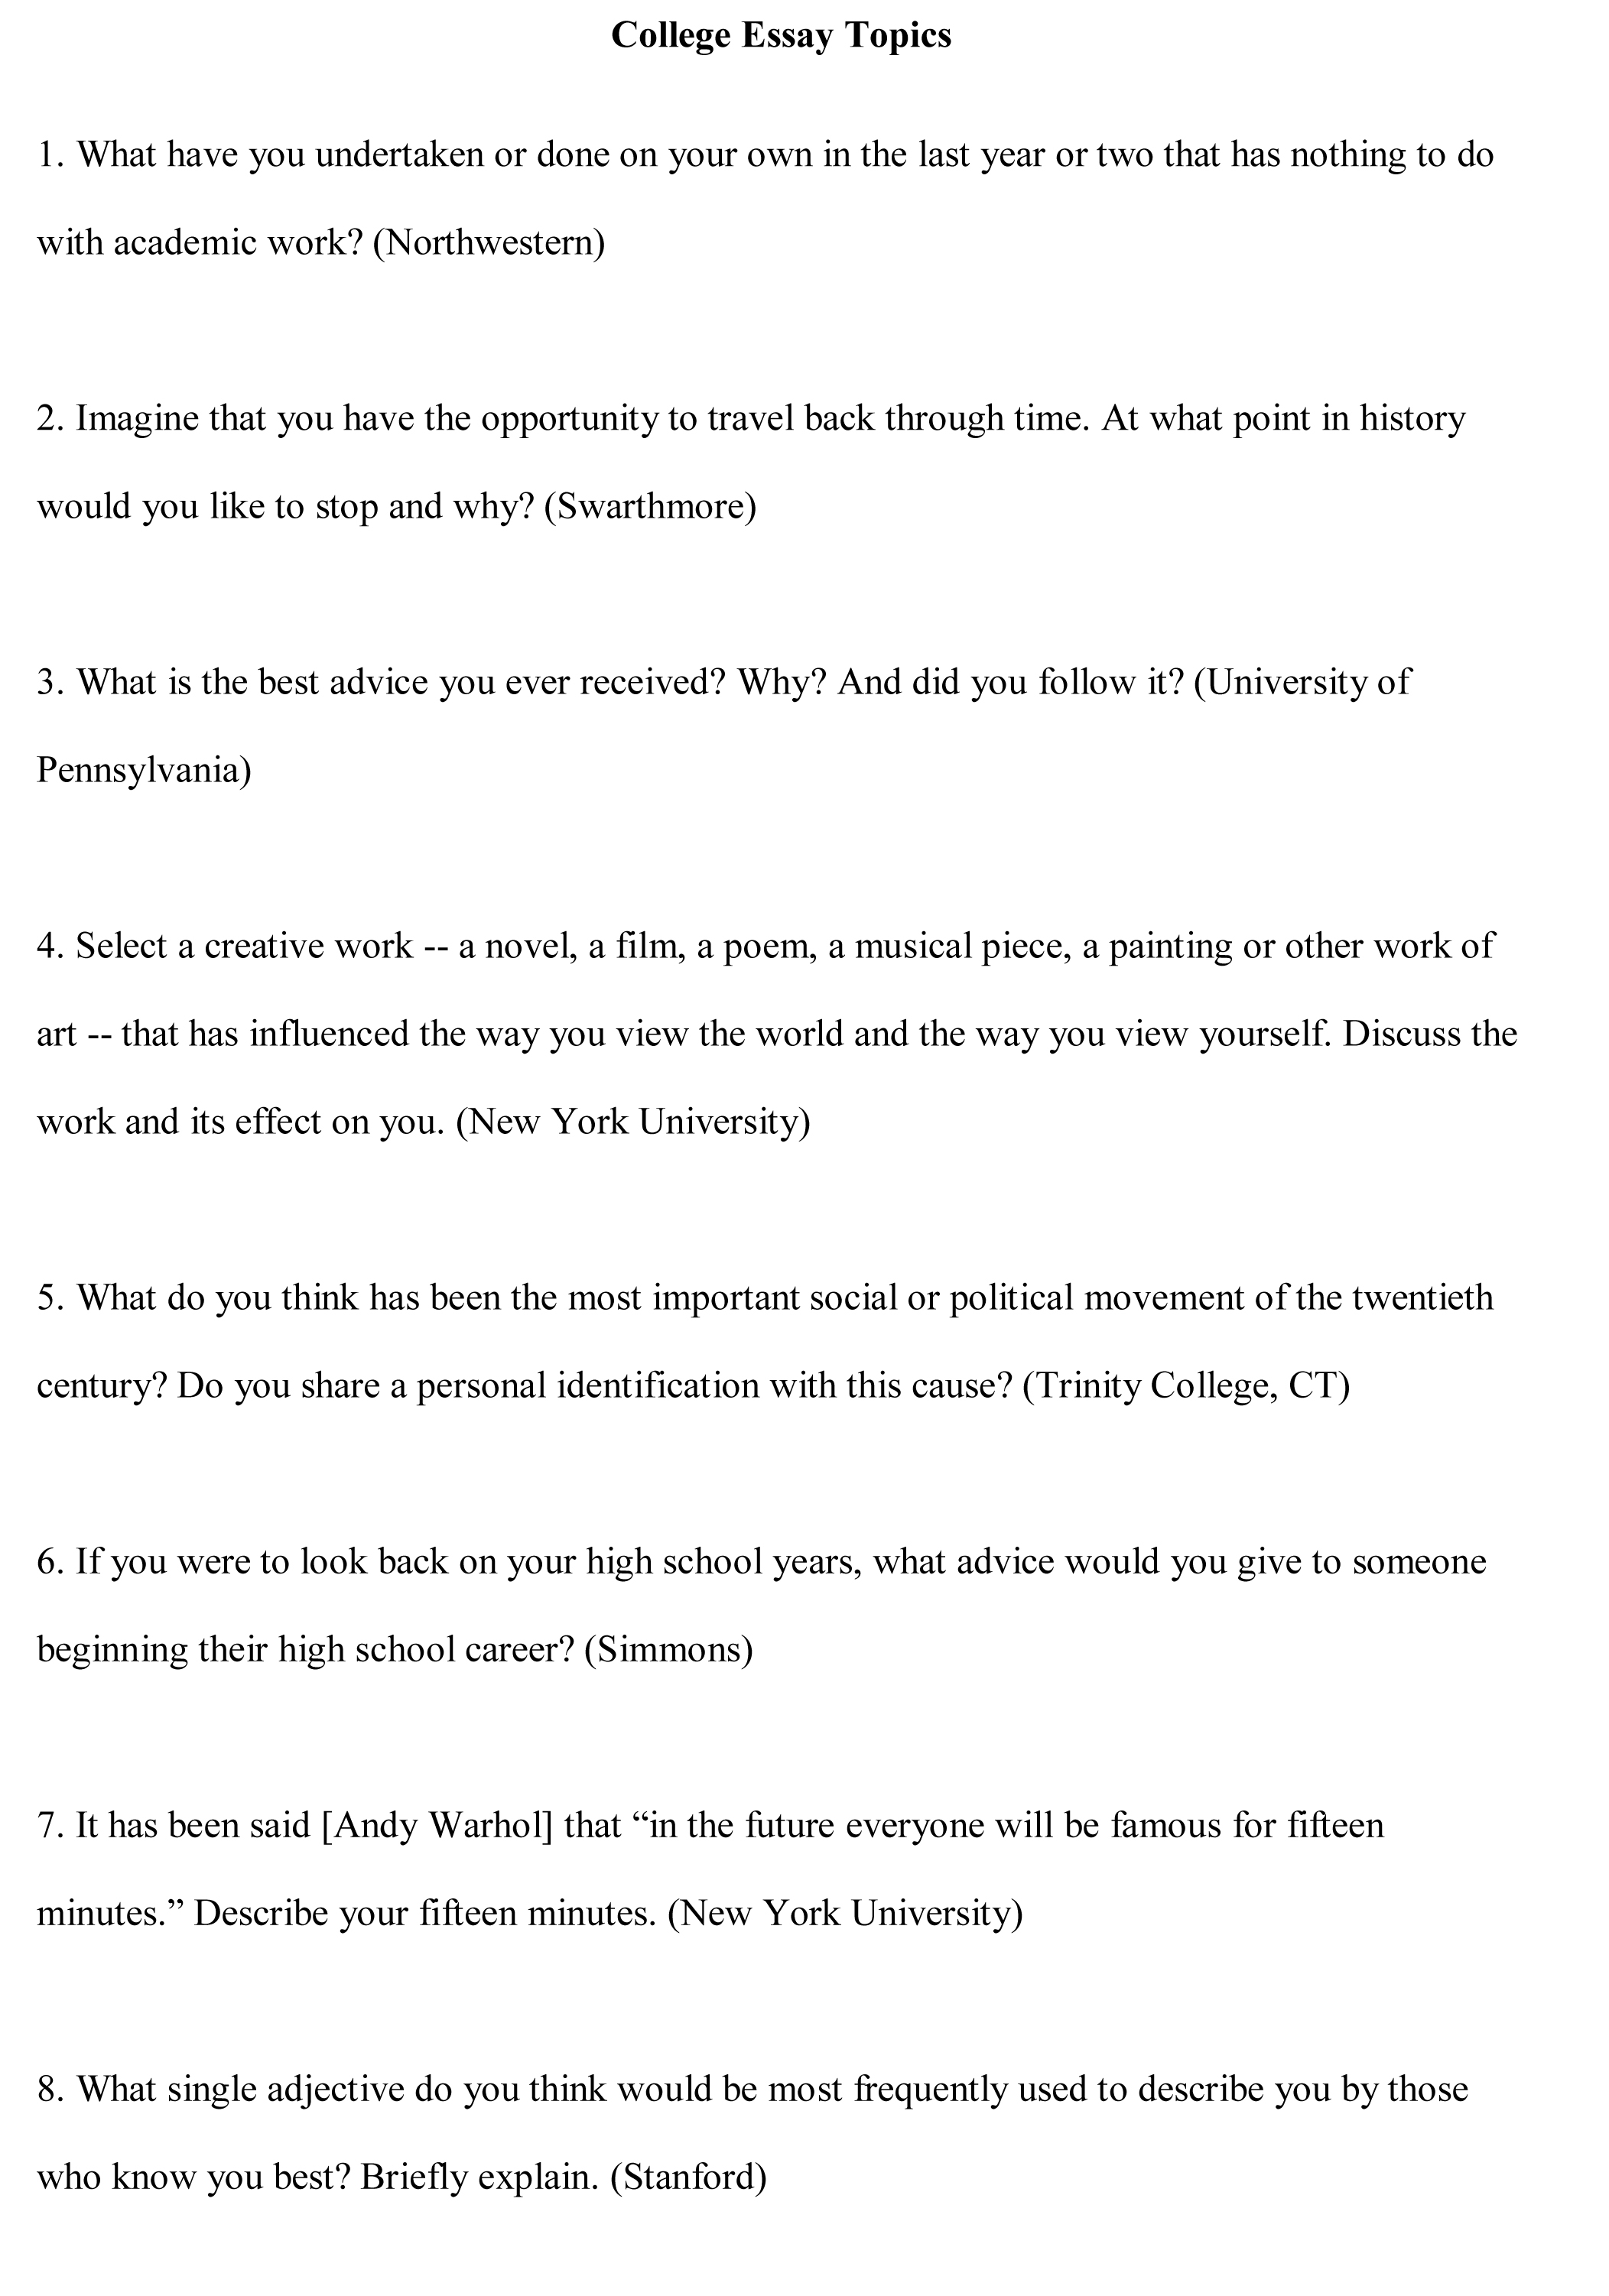 005 Essay Prompts College Topics Free Sample1 Incredible Prompt Examples Writing For 4th Grade Expository High School Full